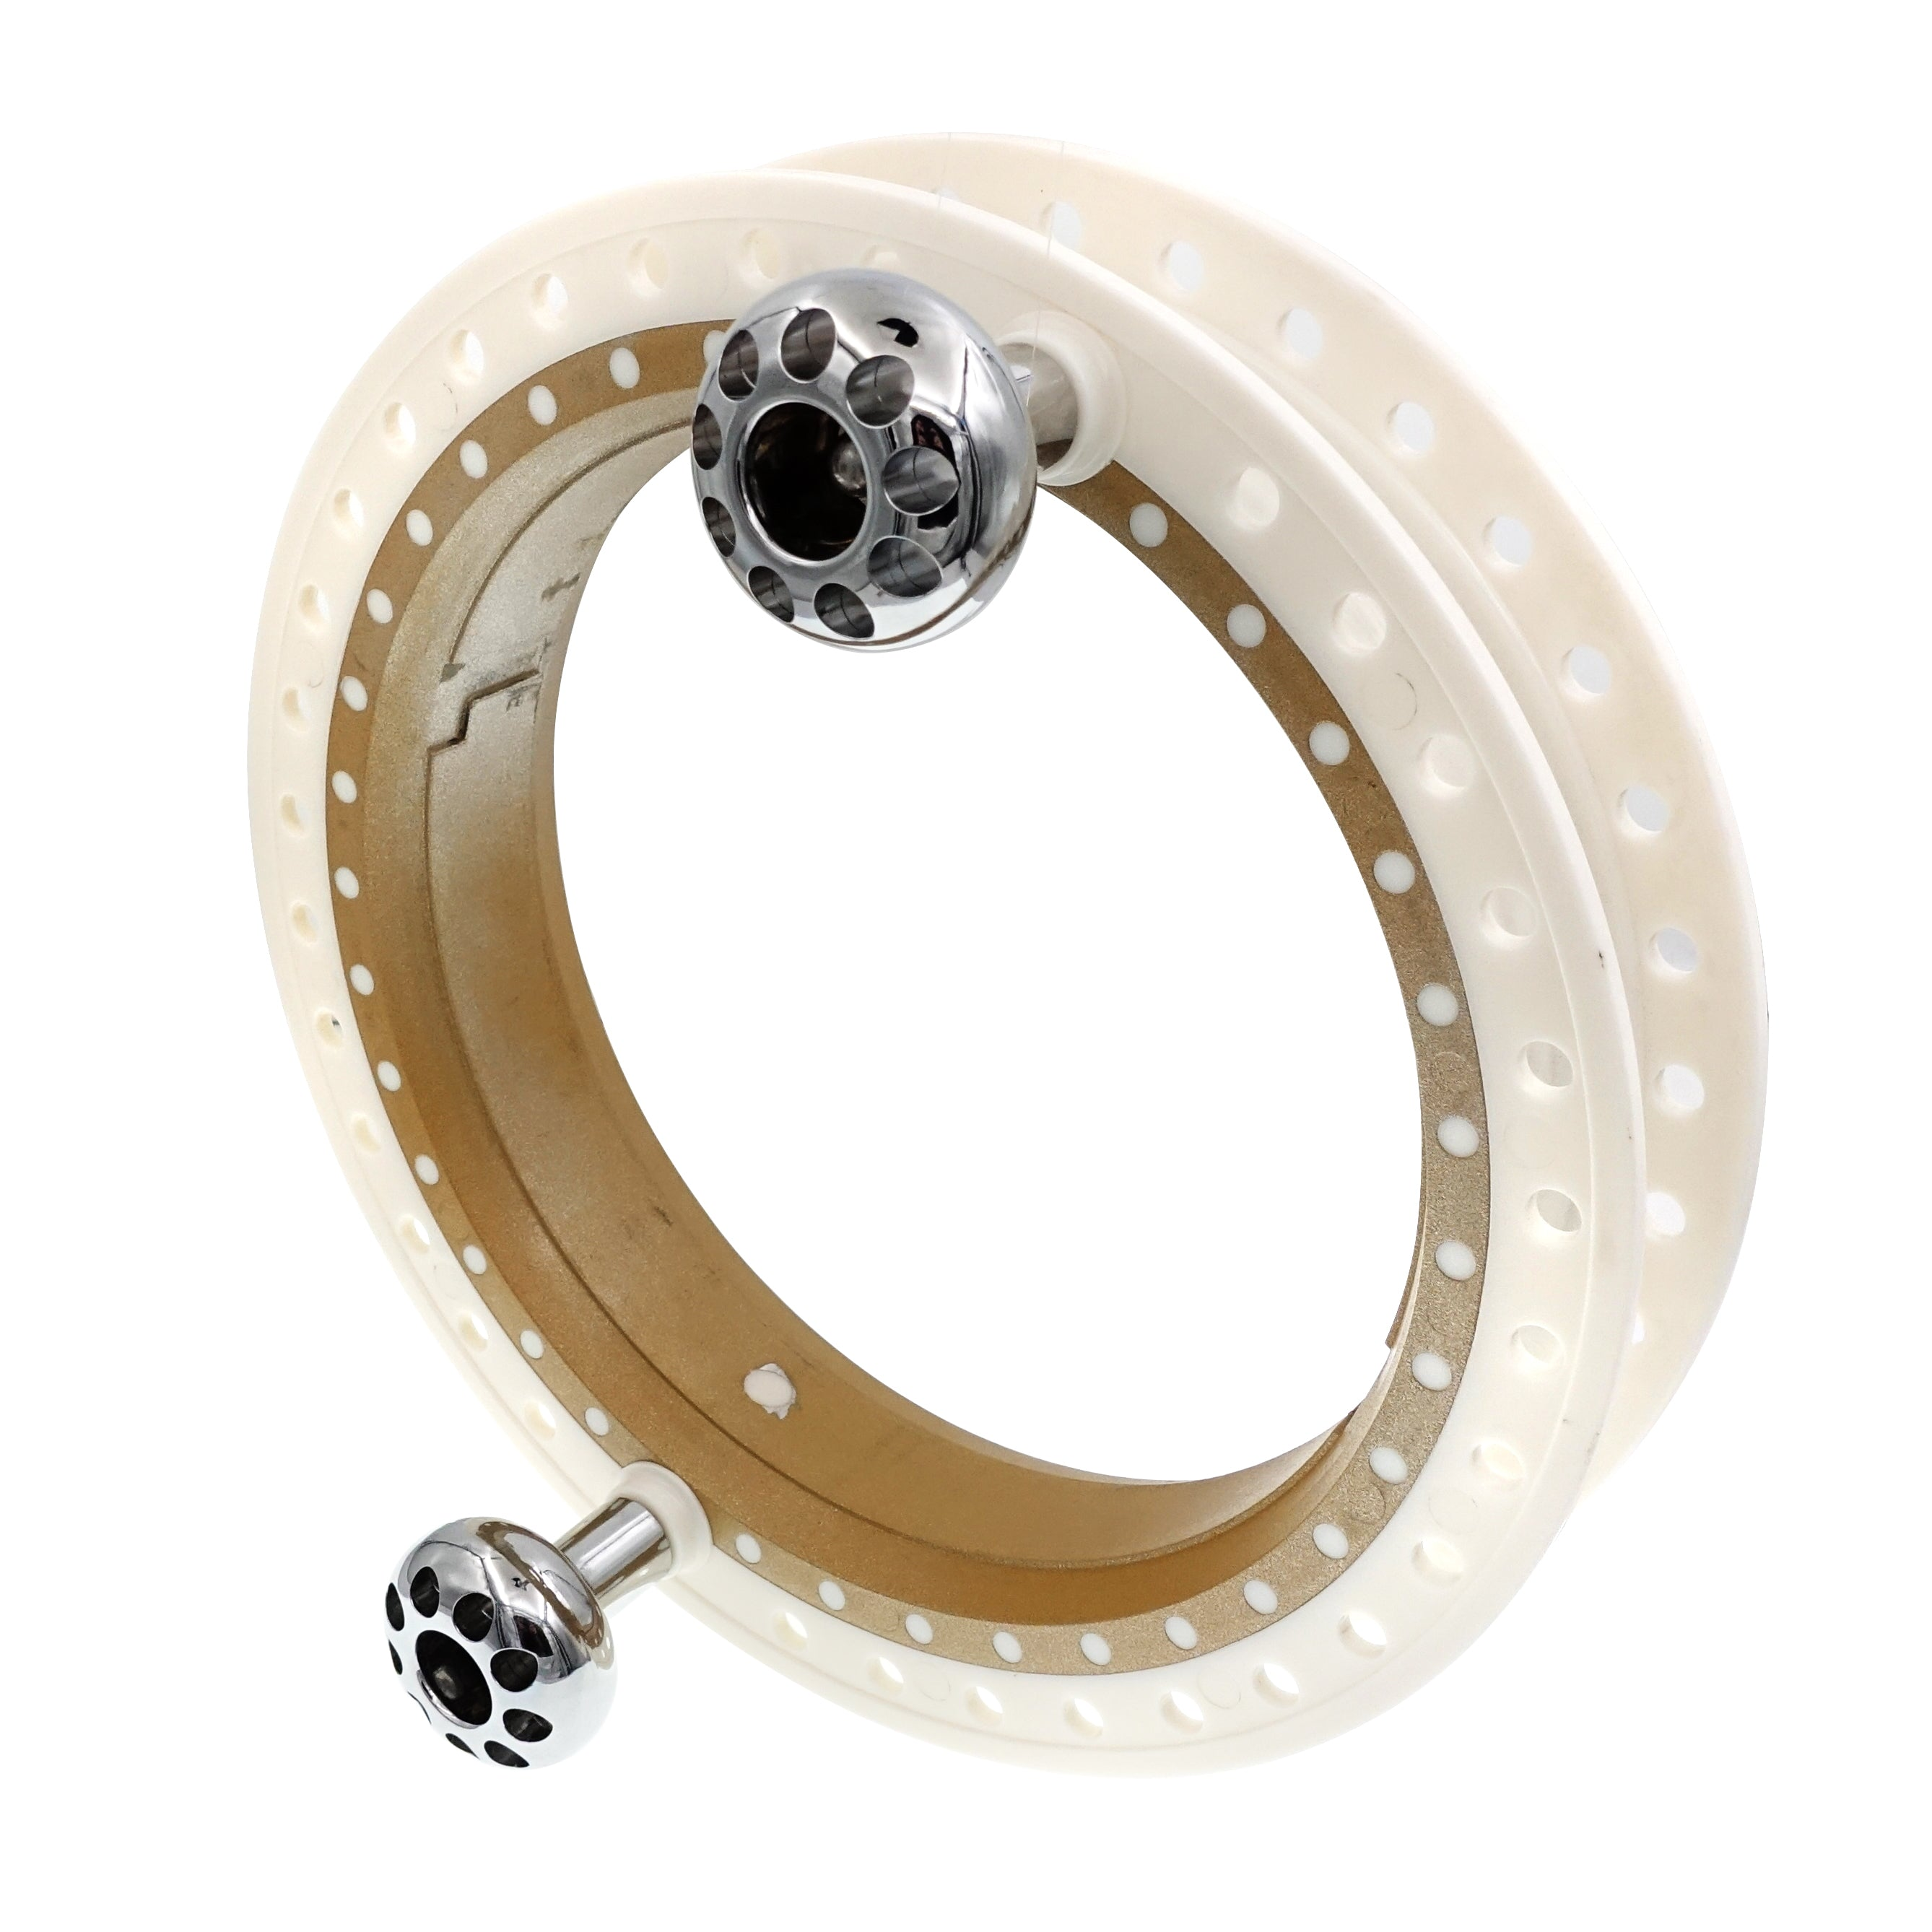 White ABS Plastic Kite Reel Winder Outer Part